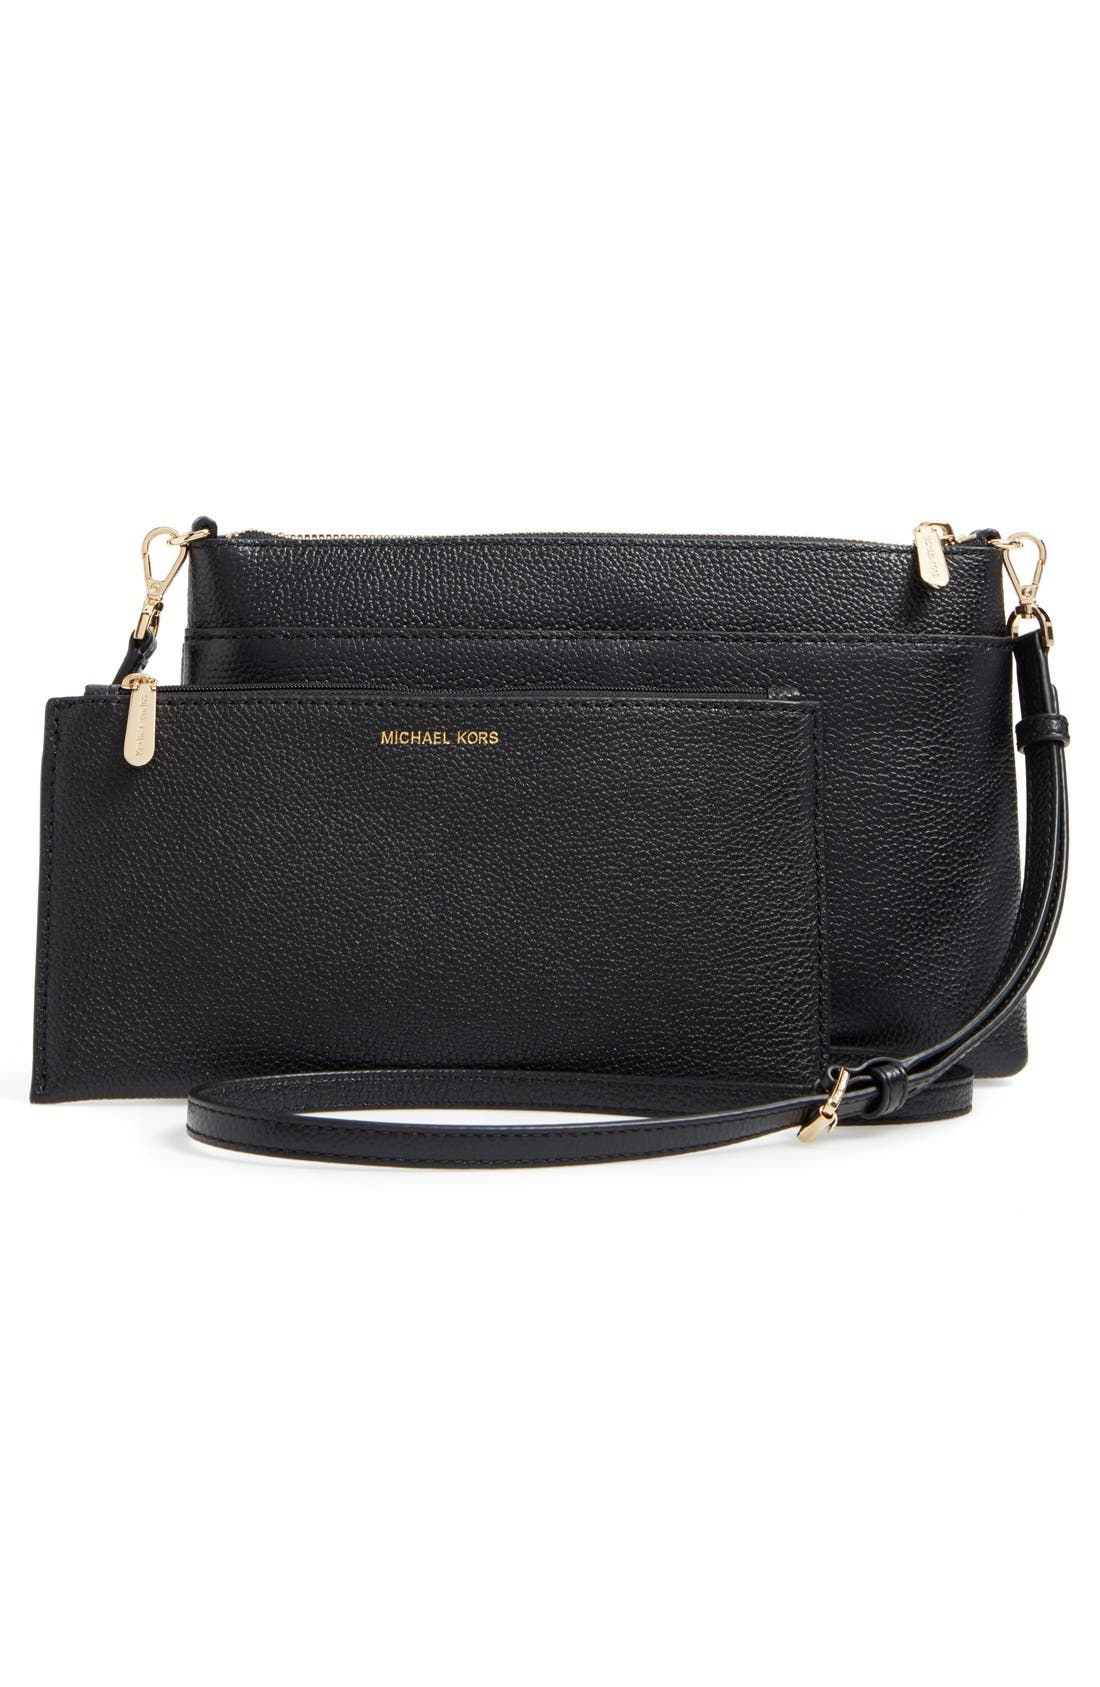 Large Mercer Leather Crossbody Bag,                             Alternate thumbnail 3, color,                             Black/ Gold